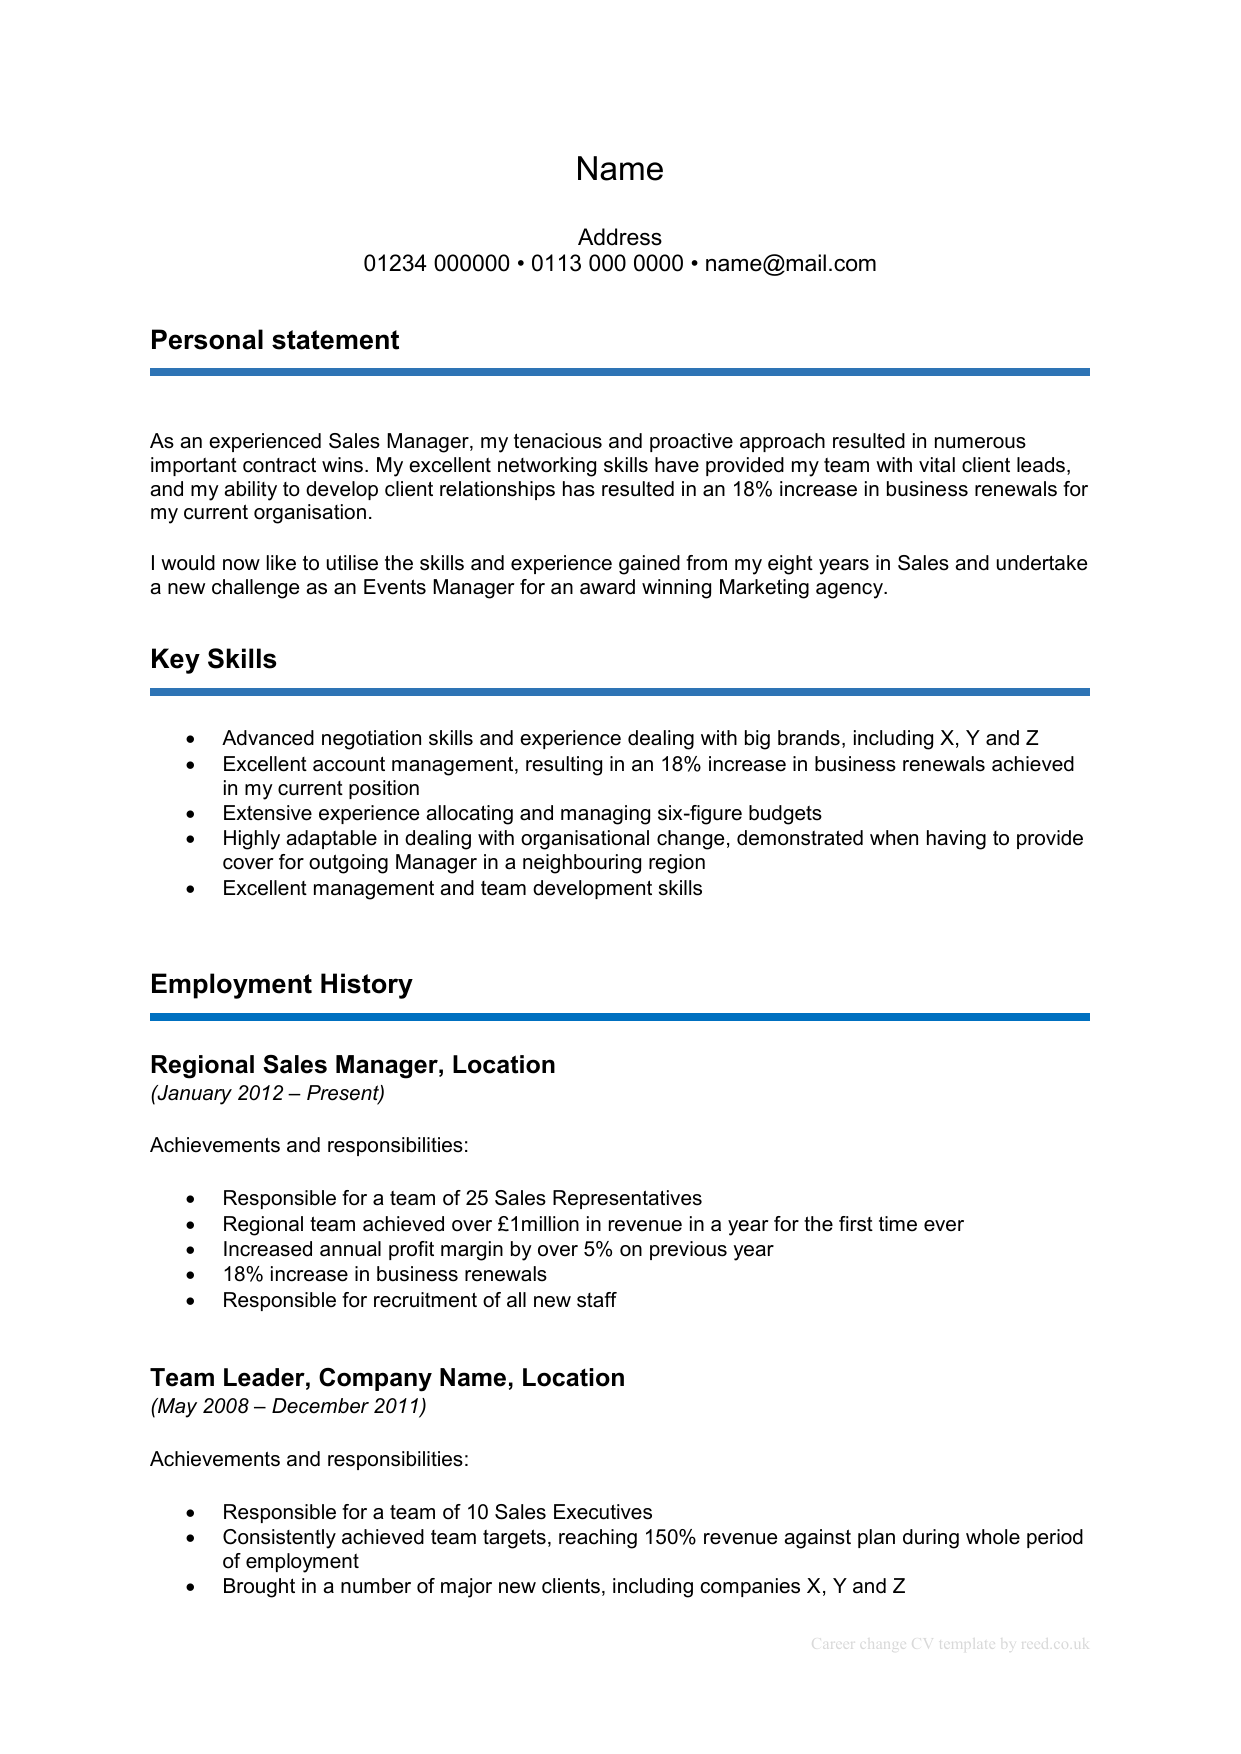 Career change CV template now